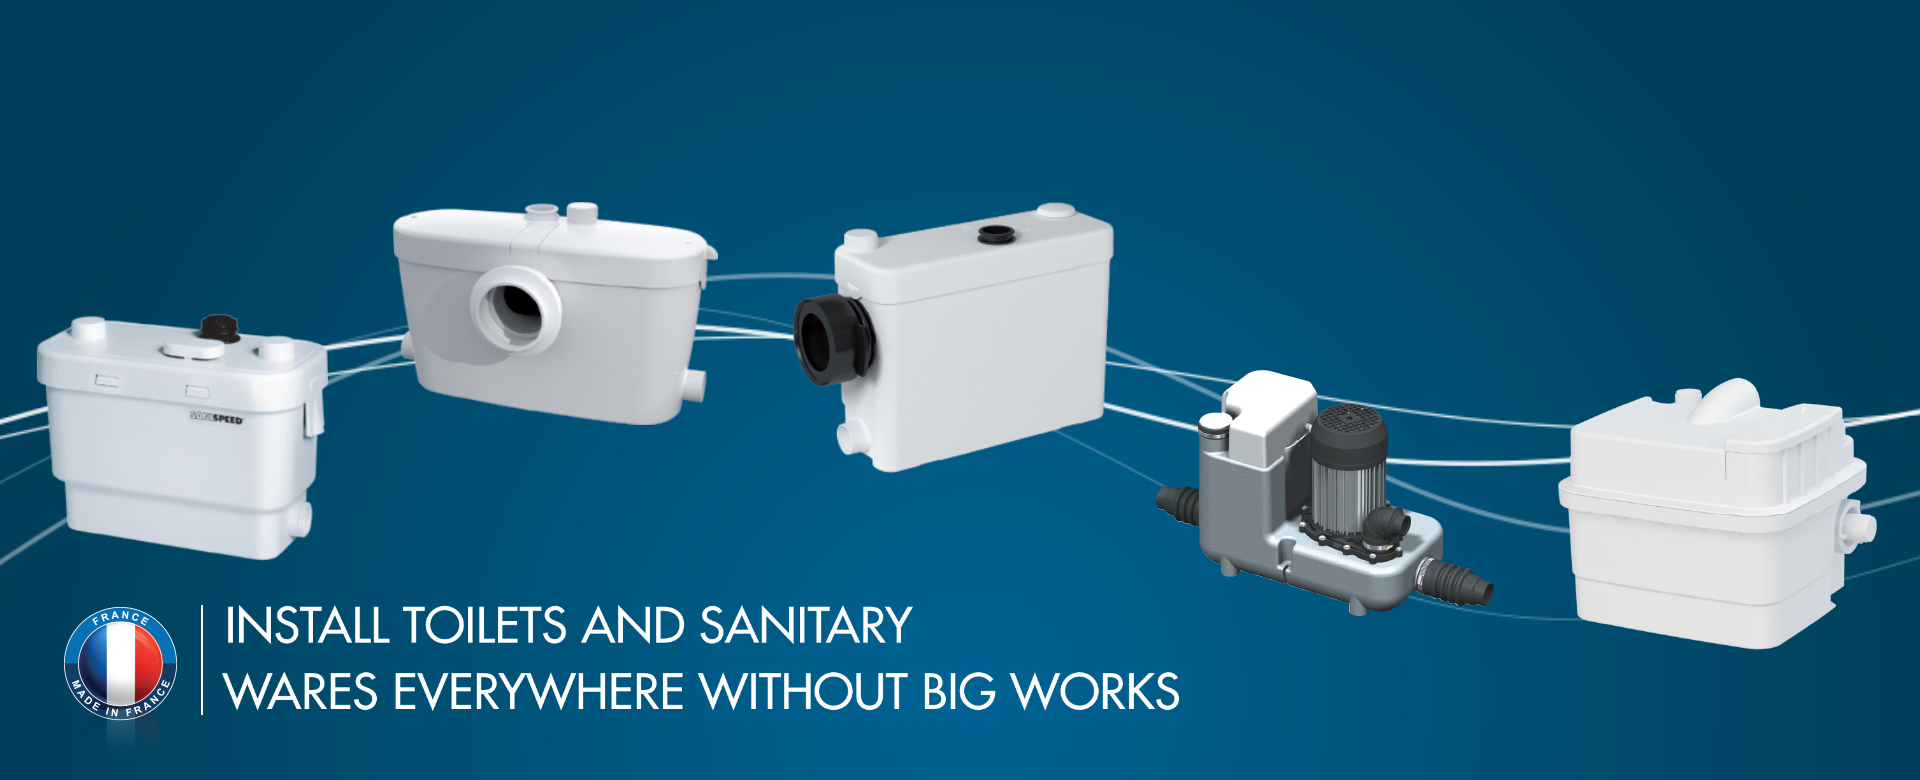 SANIFLO WATER PUMP SYSTEMS